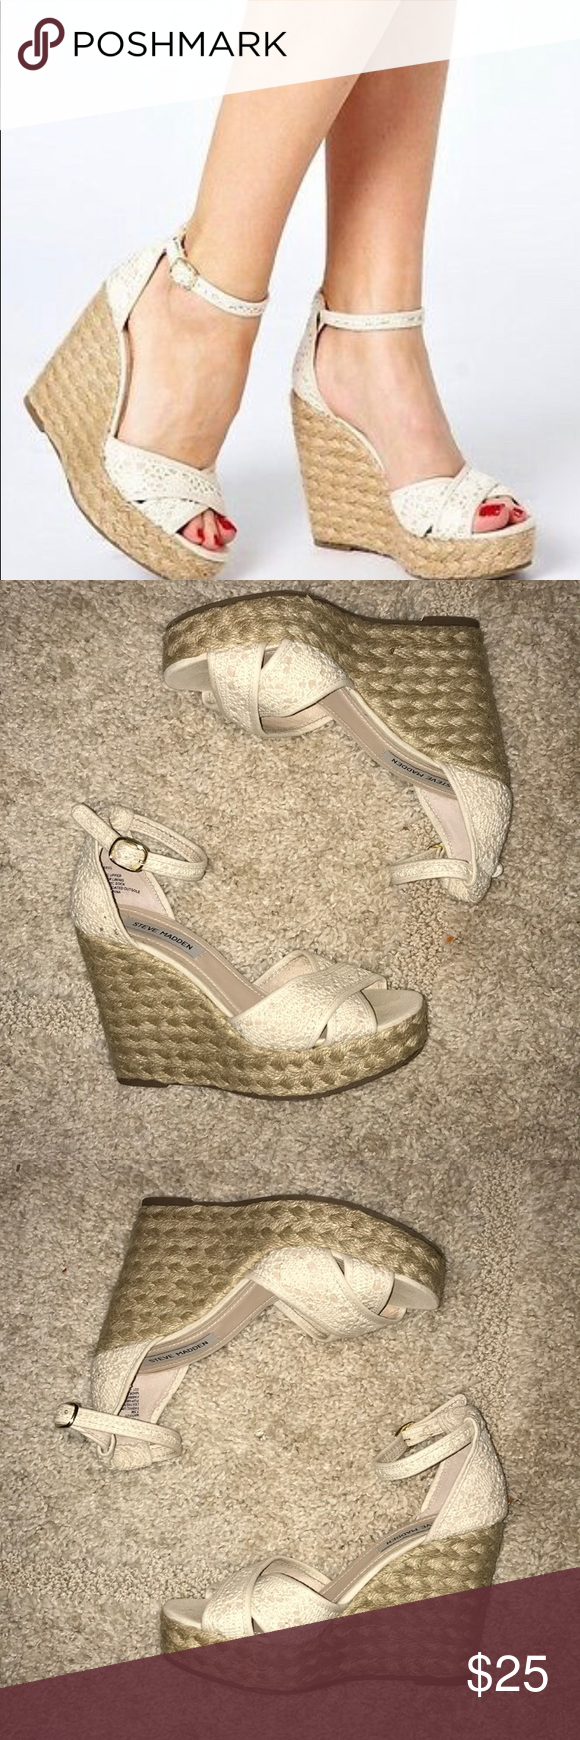 5838f51ab4b Steve Madden Marrvil Crochet Wedge Sz 7 1/2M Steve Madden Marrvil ...